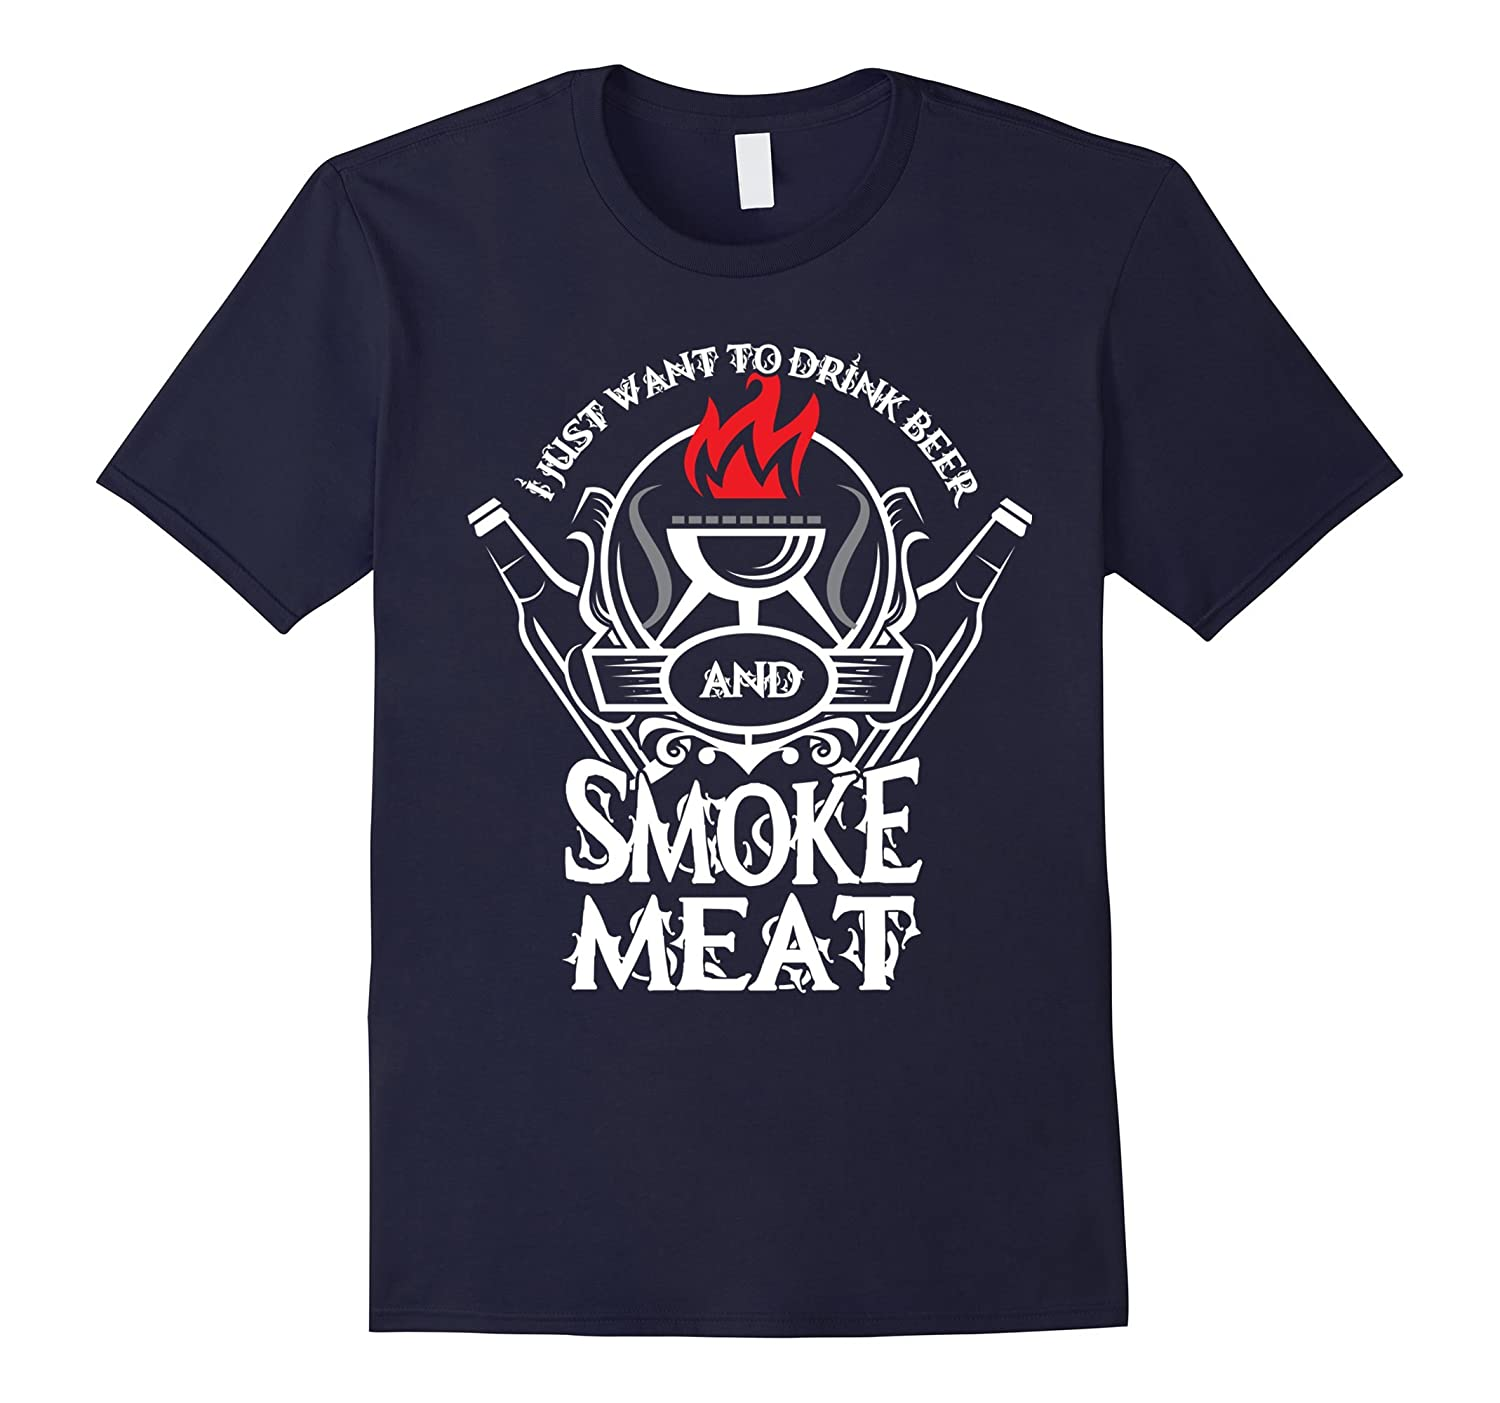 Drink Beer & Smoke Meat T Shirt, Women's Beer Smoke Meat Tee-CL